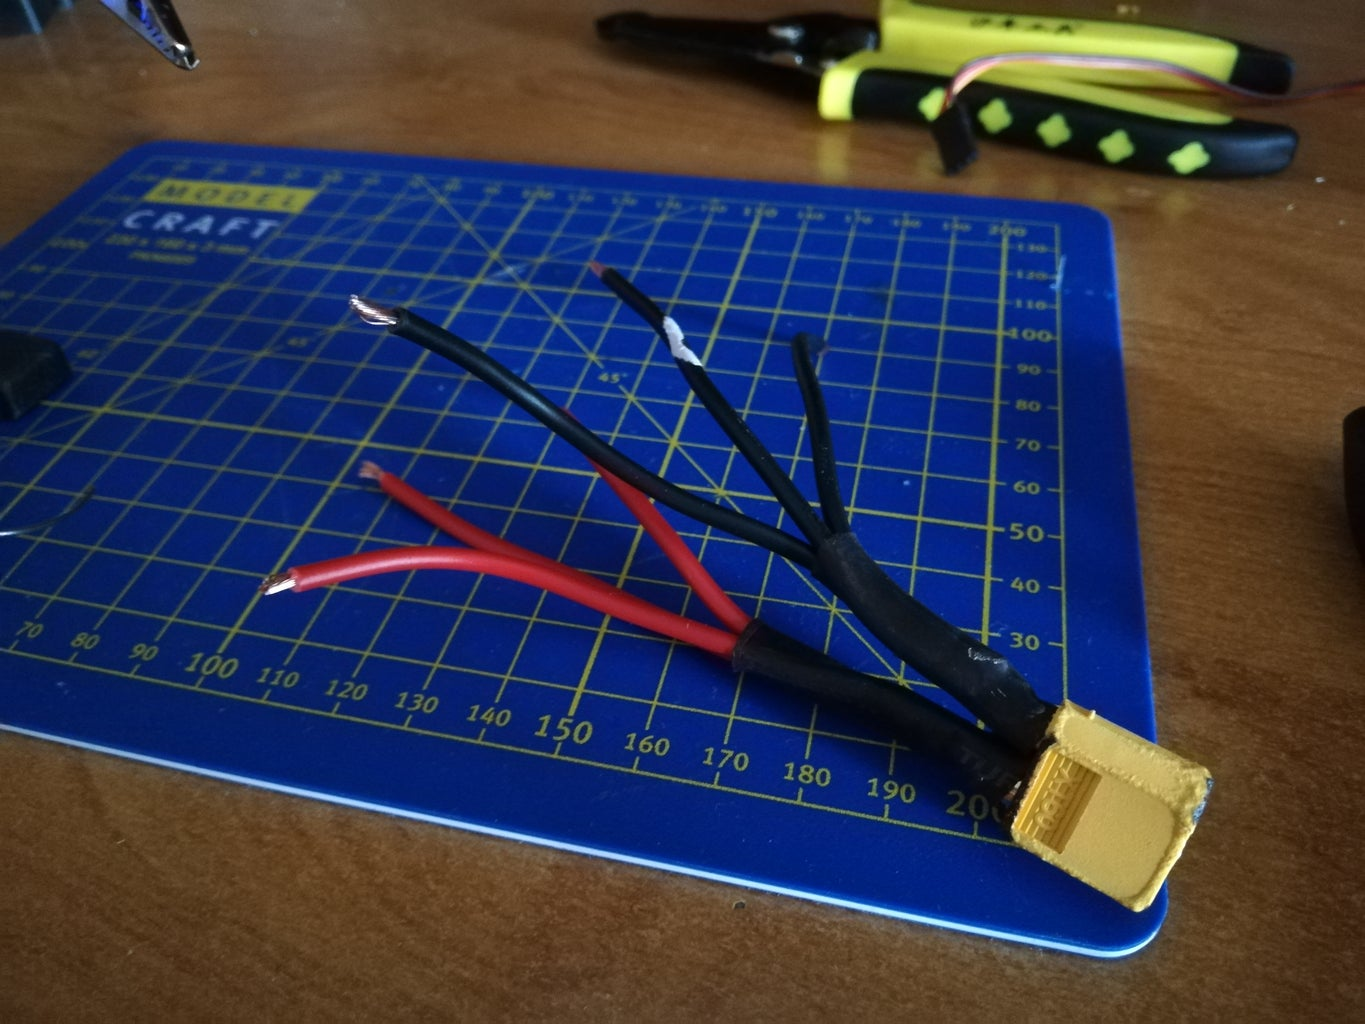 ESCs and Power Cable